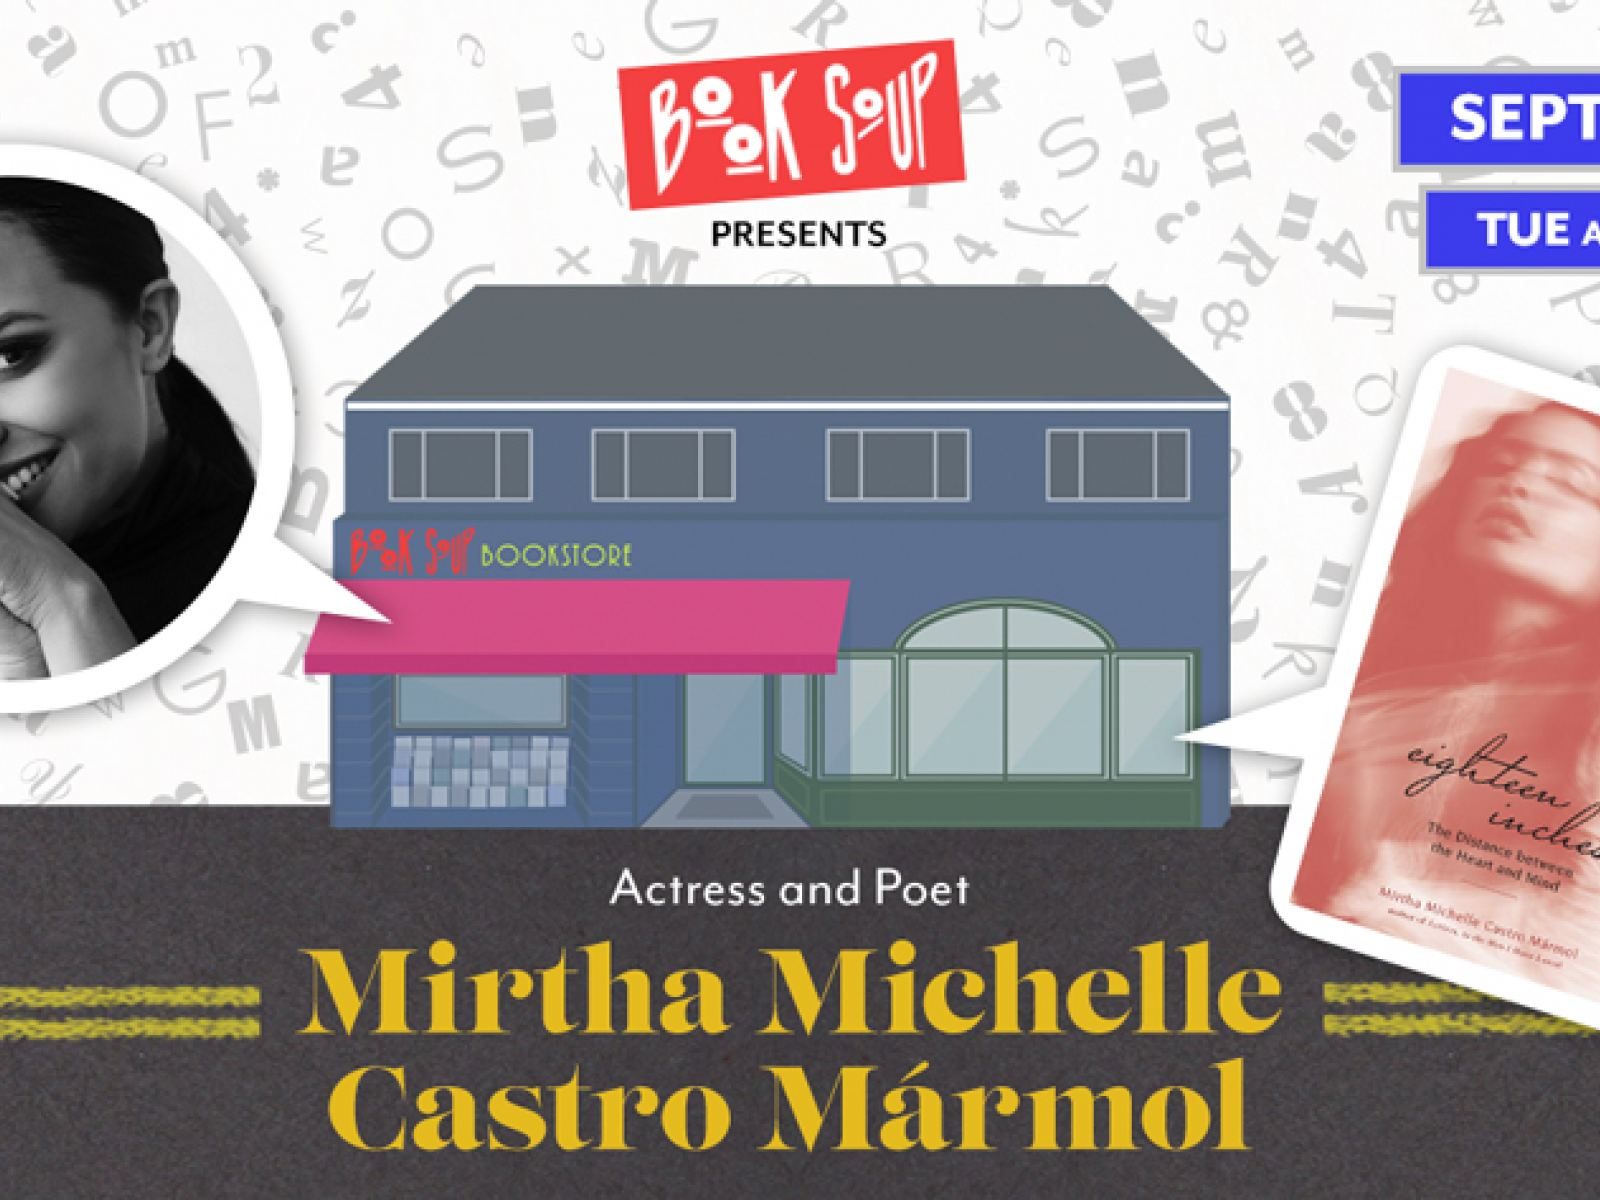 Main image for event titled Mirtha Michelle Castro Mármol presents Eighteen Inches: The Distance Between the Heart and Mind: by Book Soup